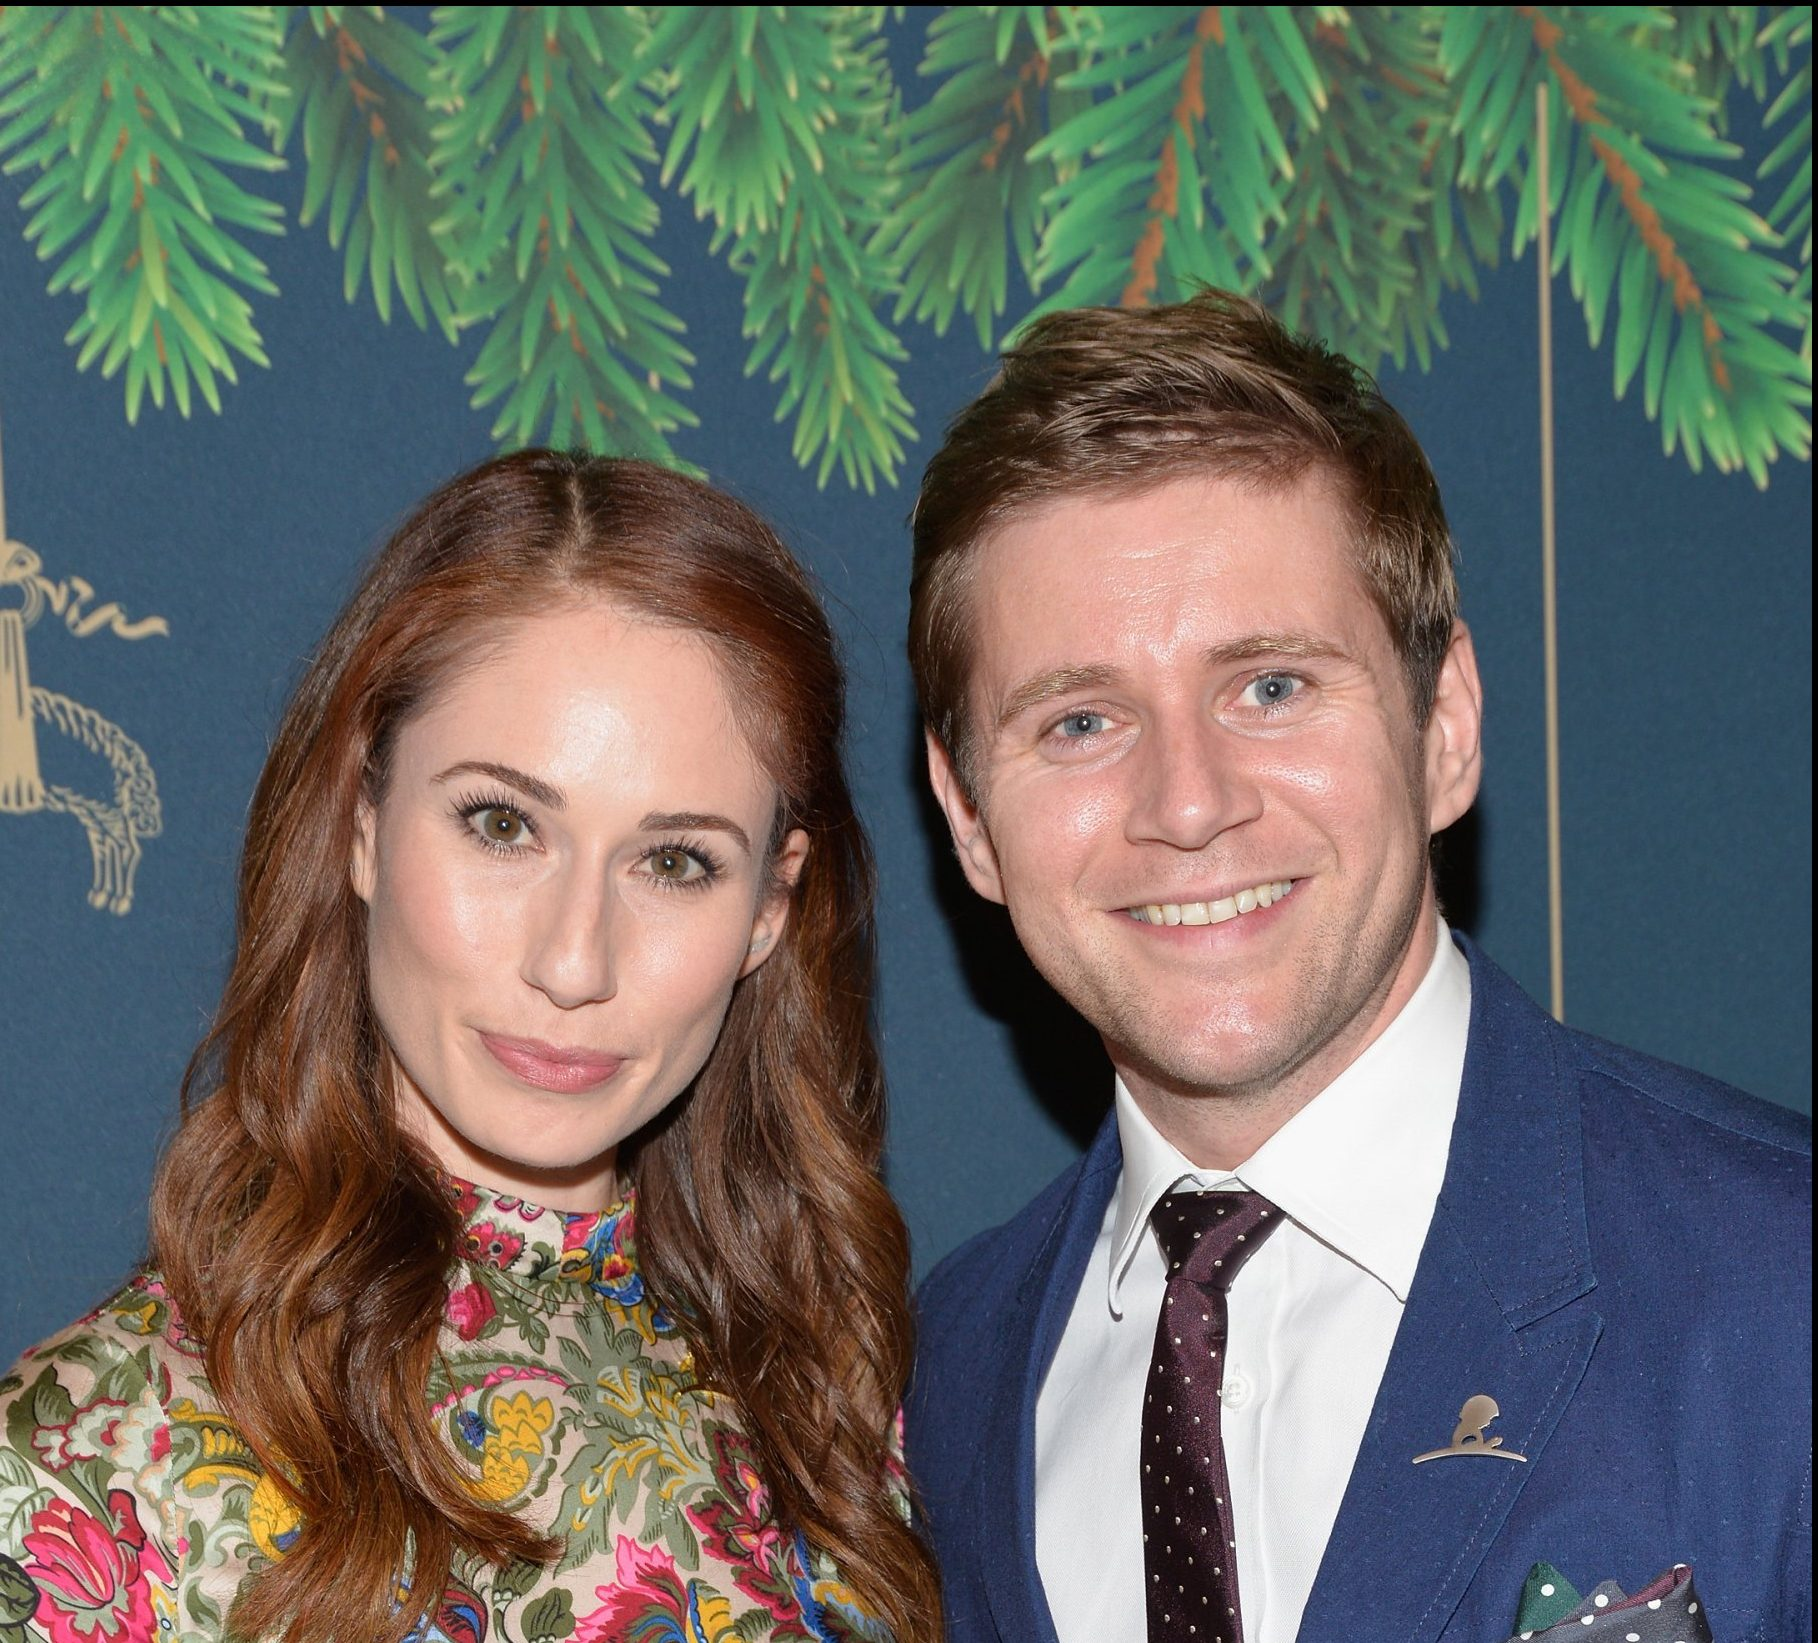 BEVERLY HILLS, CA - DECEMBER 02: Jessica Blair Herman and Allen Leech attend the Brooks Brothers holiday celebration with St Jude Children's Research Hospital at Brooks Brothers Rodeo on December 2, 2017 in Beverly Hills, California. (Photo by Michael Tullberg/Getty Images)